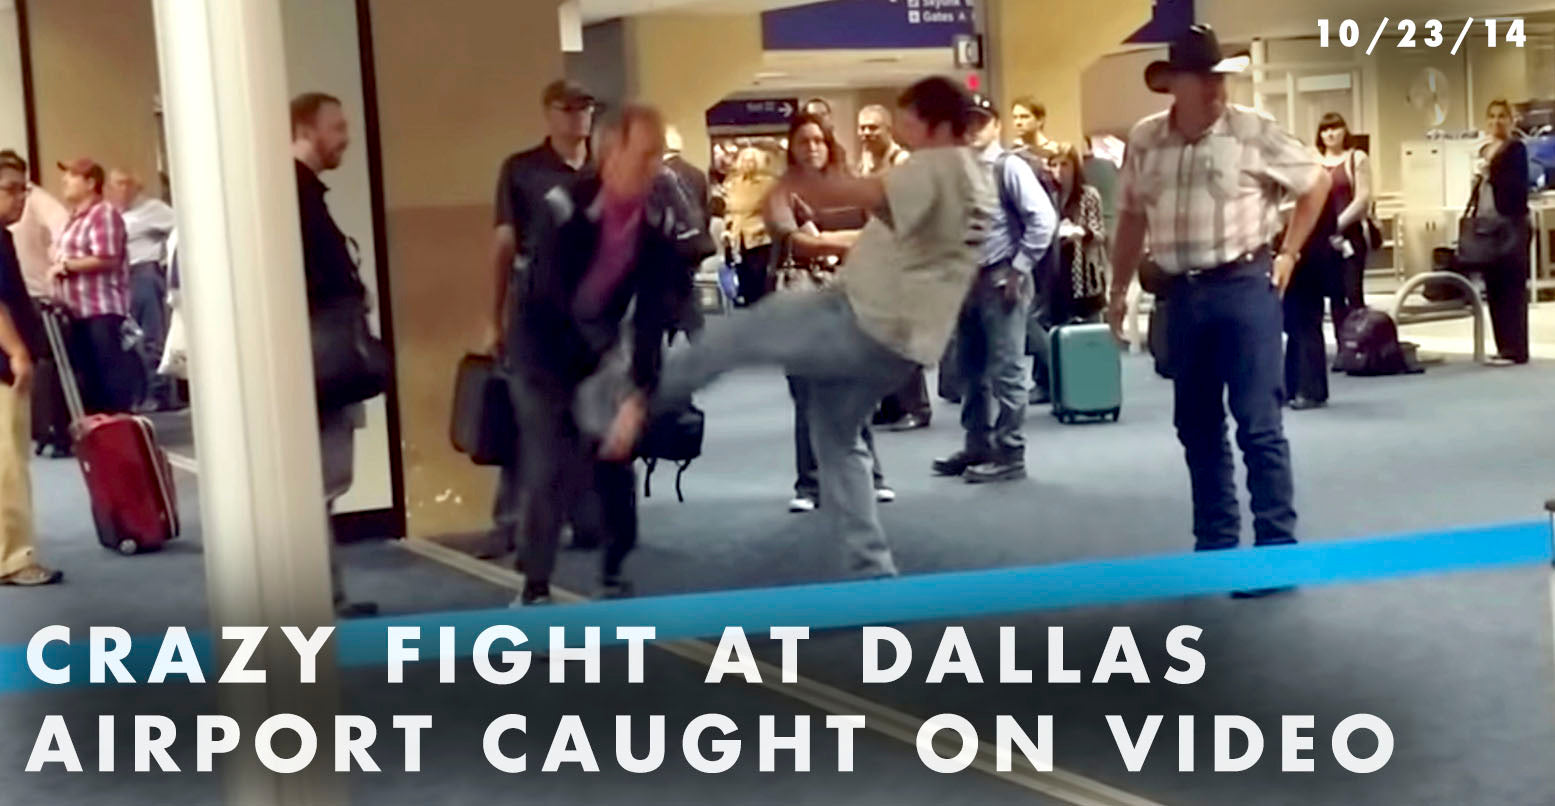 CRAZY FIGHT AT DALLAS AIRPORT CAUGHT ON VIDEO (10/23/2014)